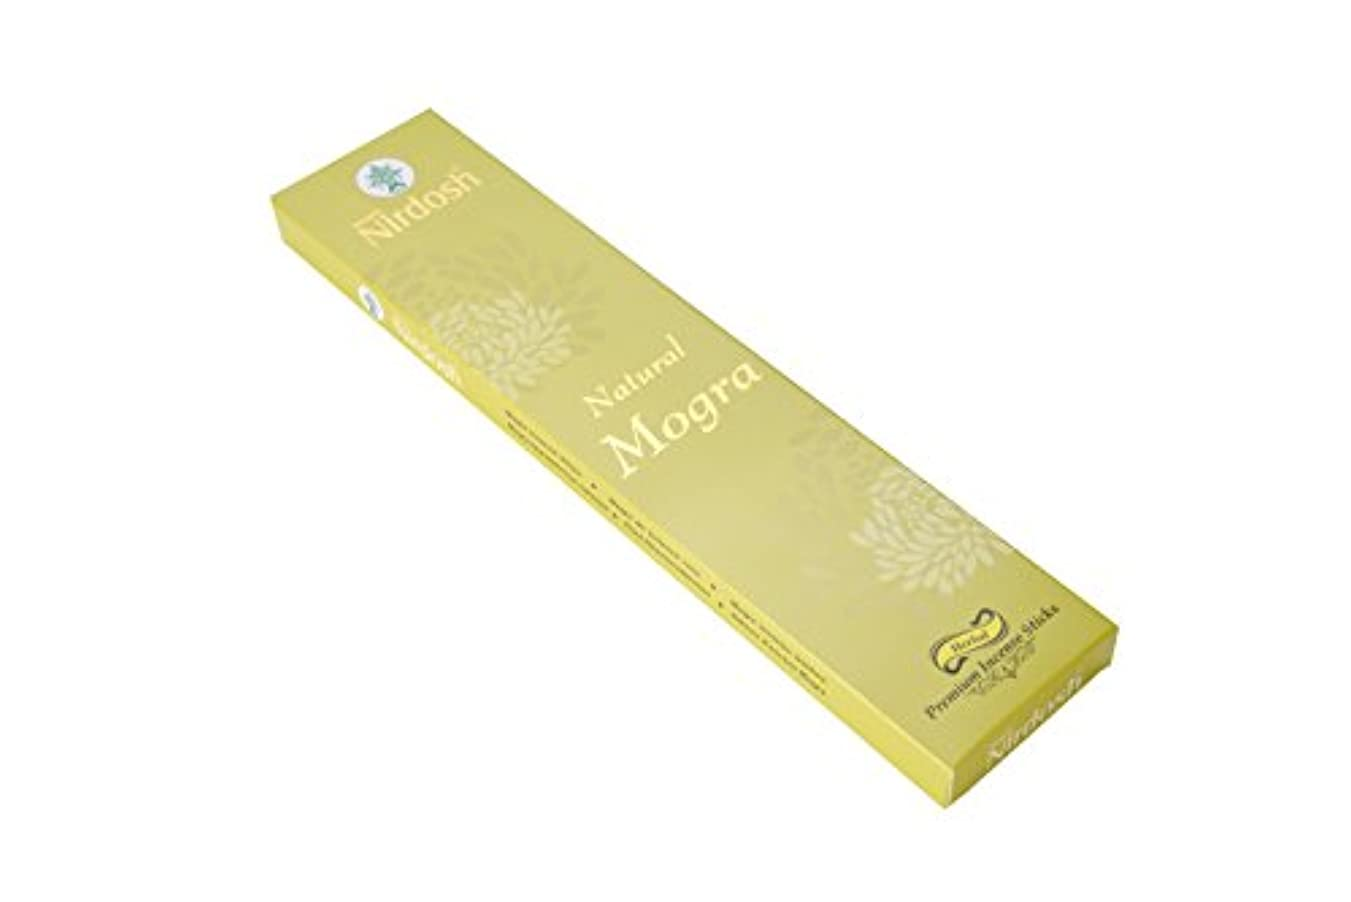 ピーブみなさんびんNirdosh Premium Herbal Incense Sticks – Natural Mogra味100 g。12インチLong ( Pack of 2 ) with 1 Free木製お香ホルダー